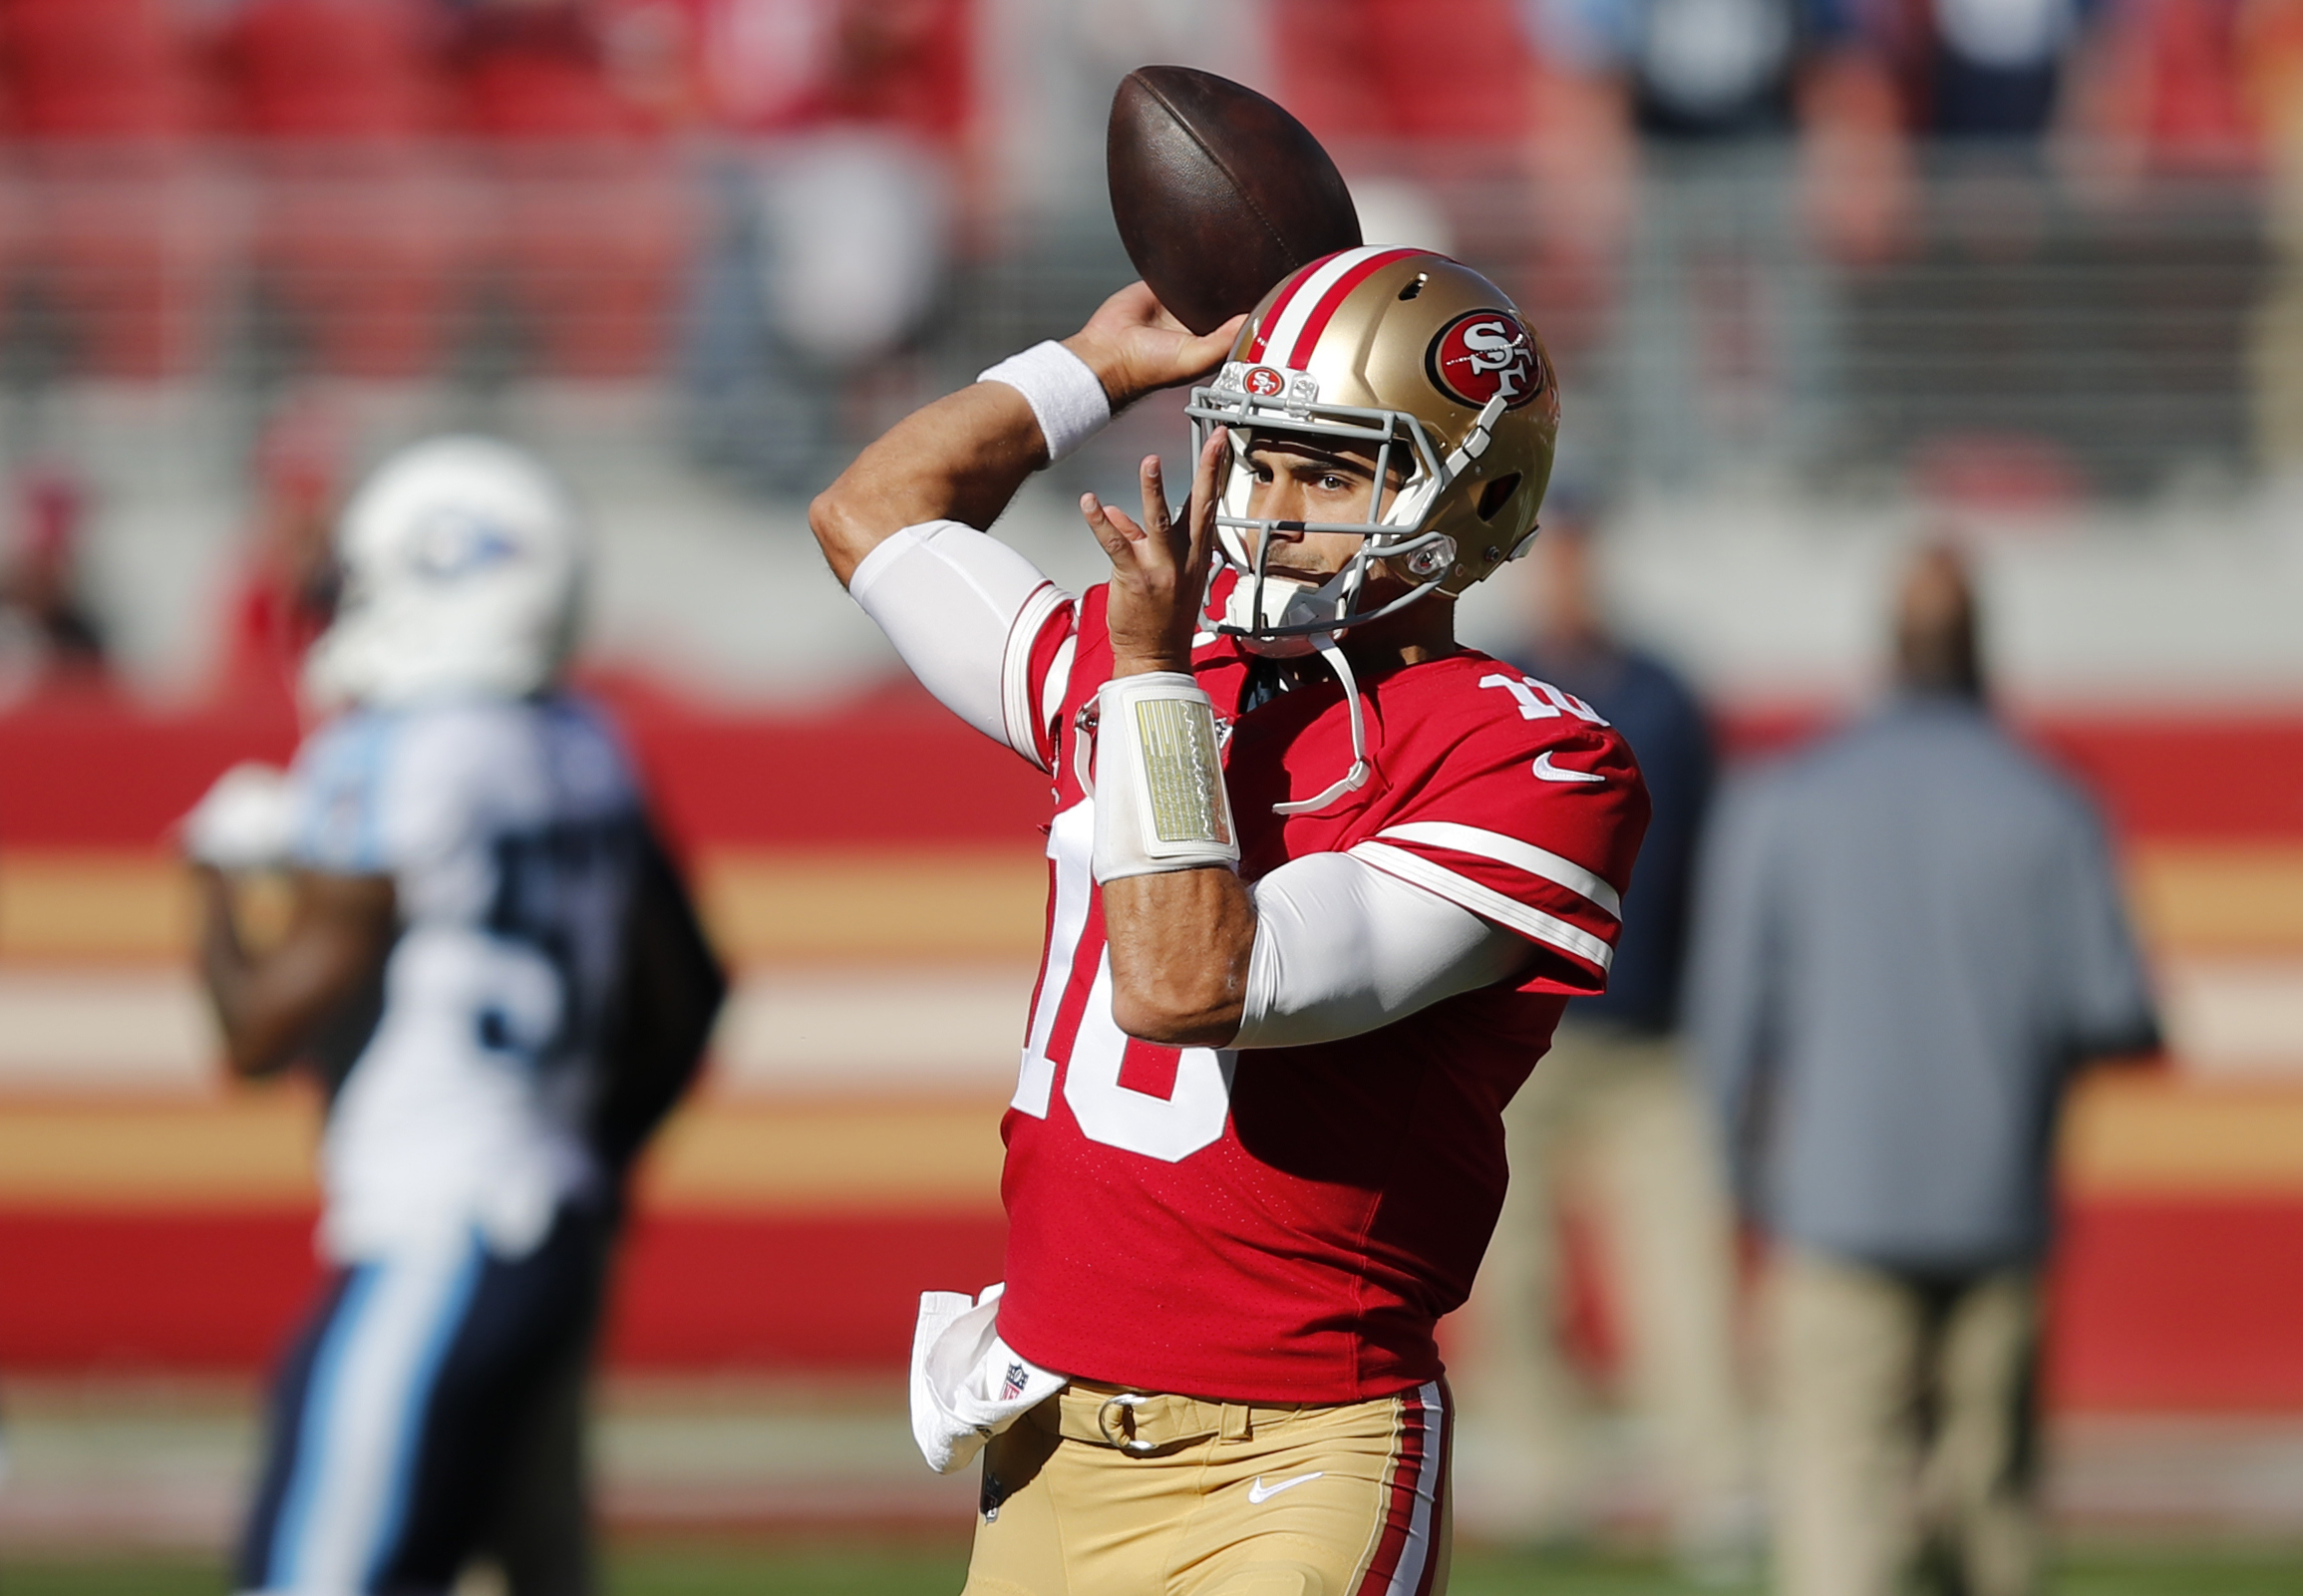 49ers' Jimmy Garoppolo looks the part of superstar QB in making